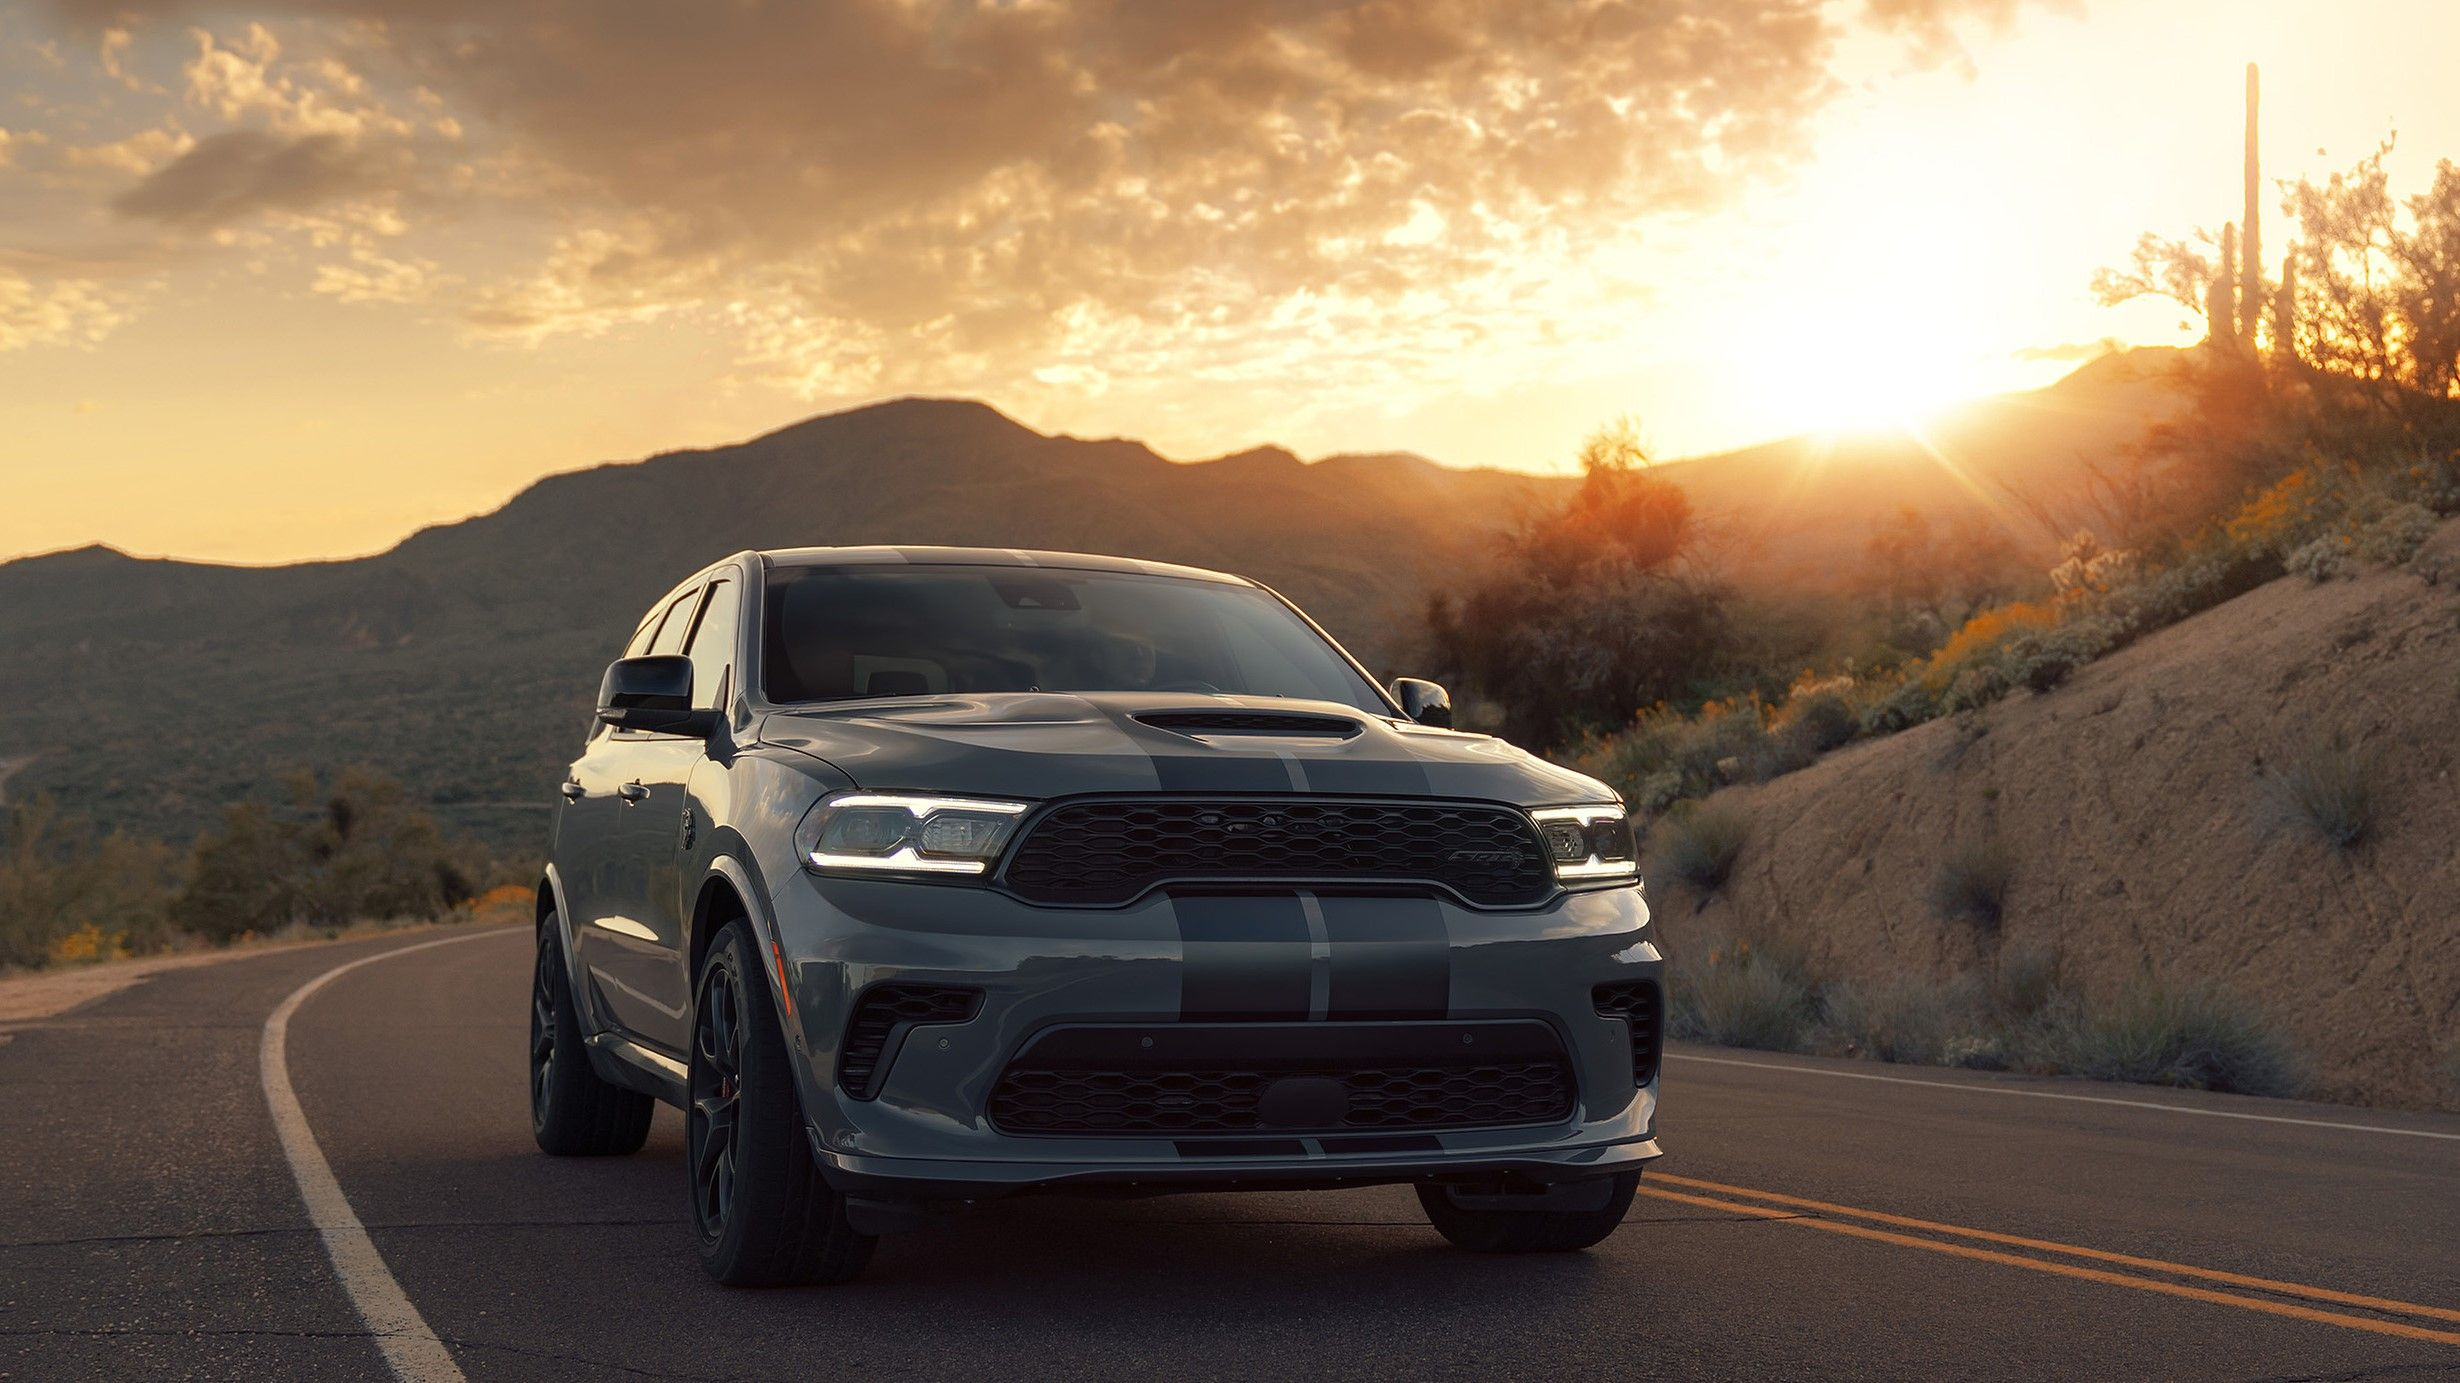 2021 Dodge Durango SRT Hellcat Review- Price, Release Date, 0-60,  Interiors, Performance, And Rivals